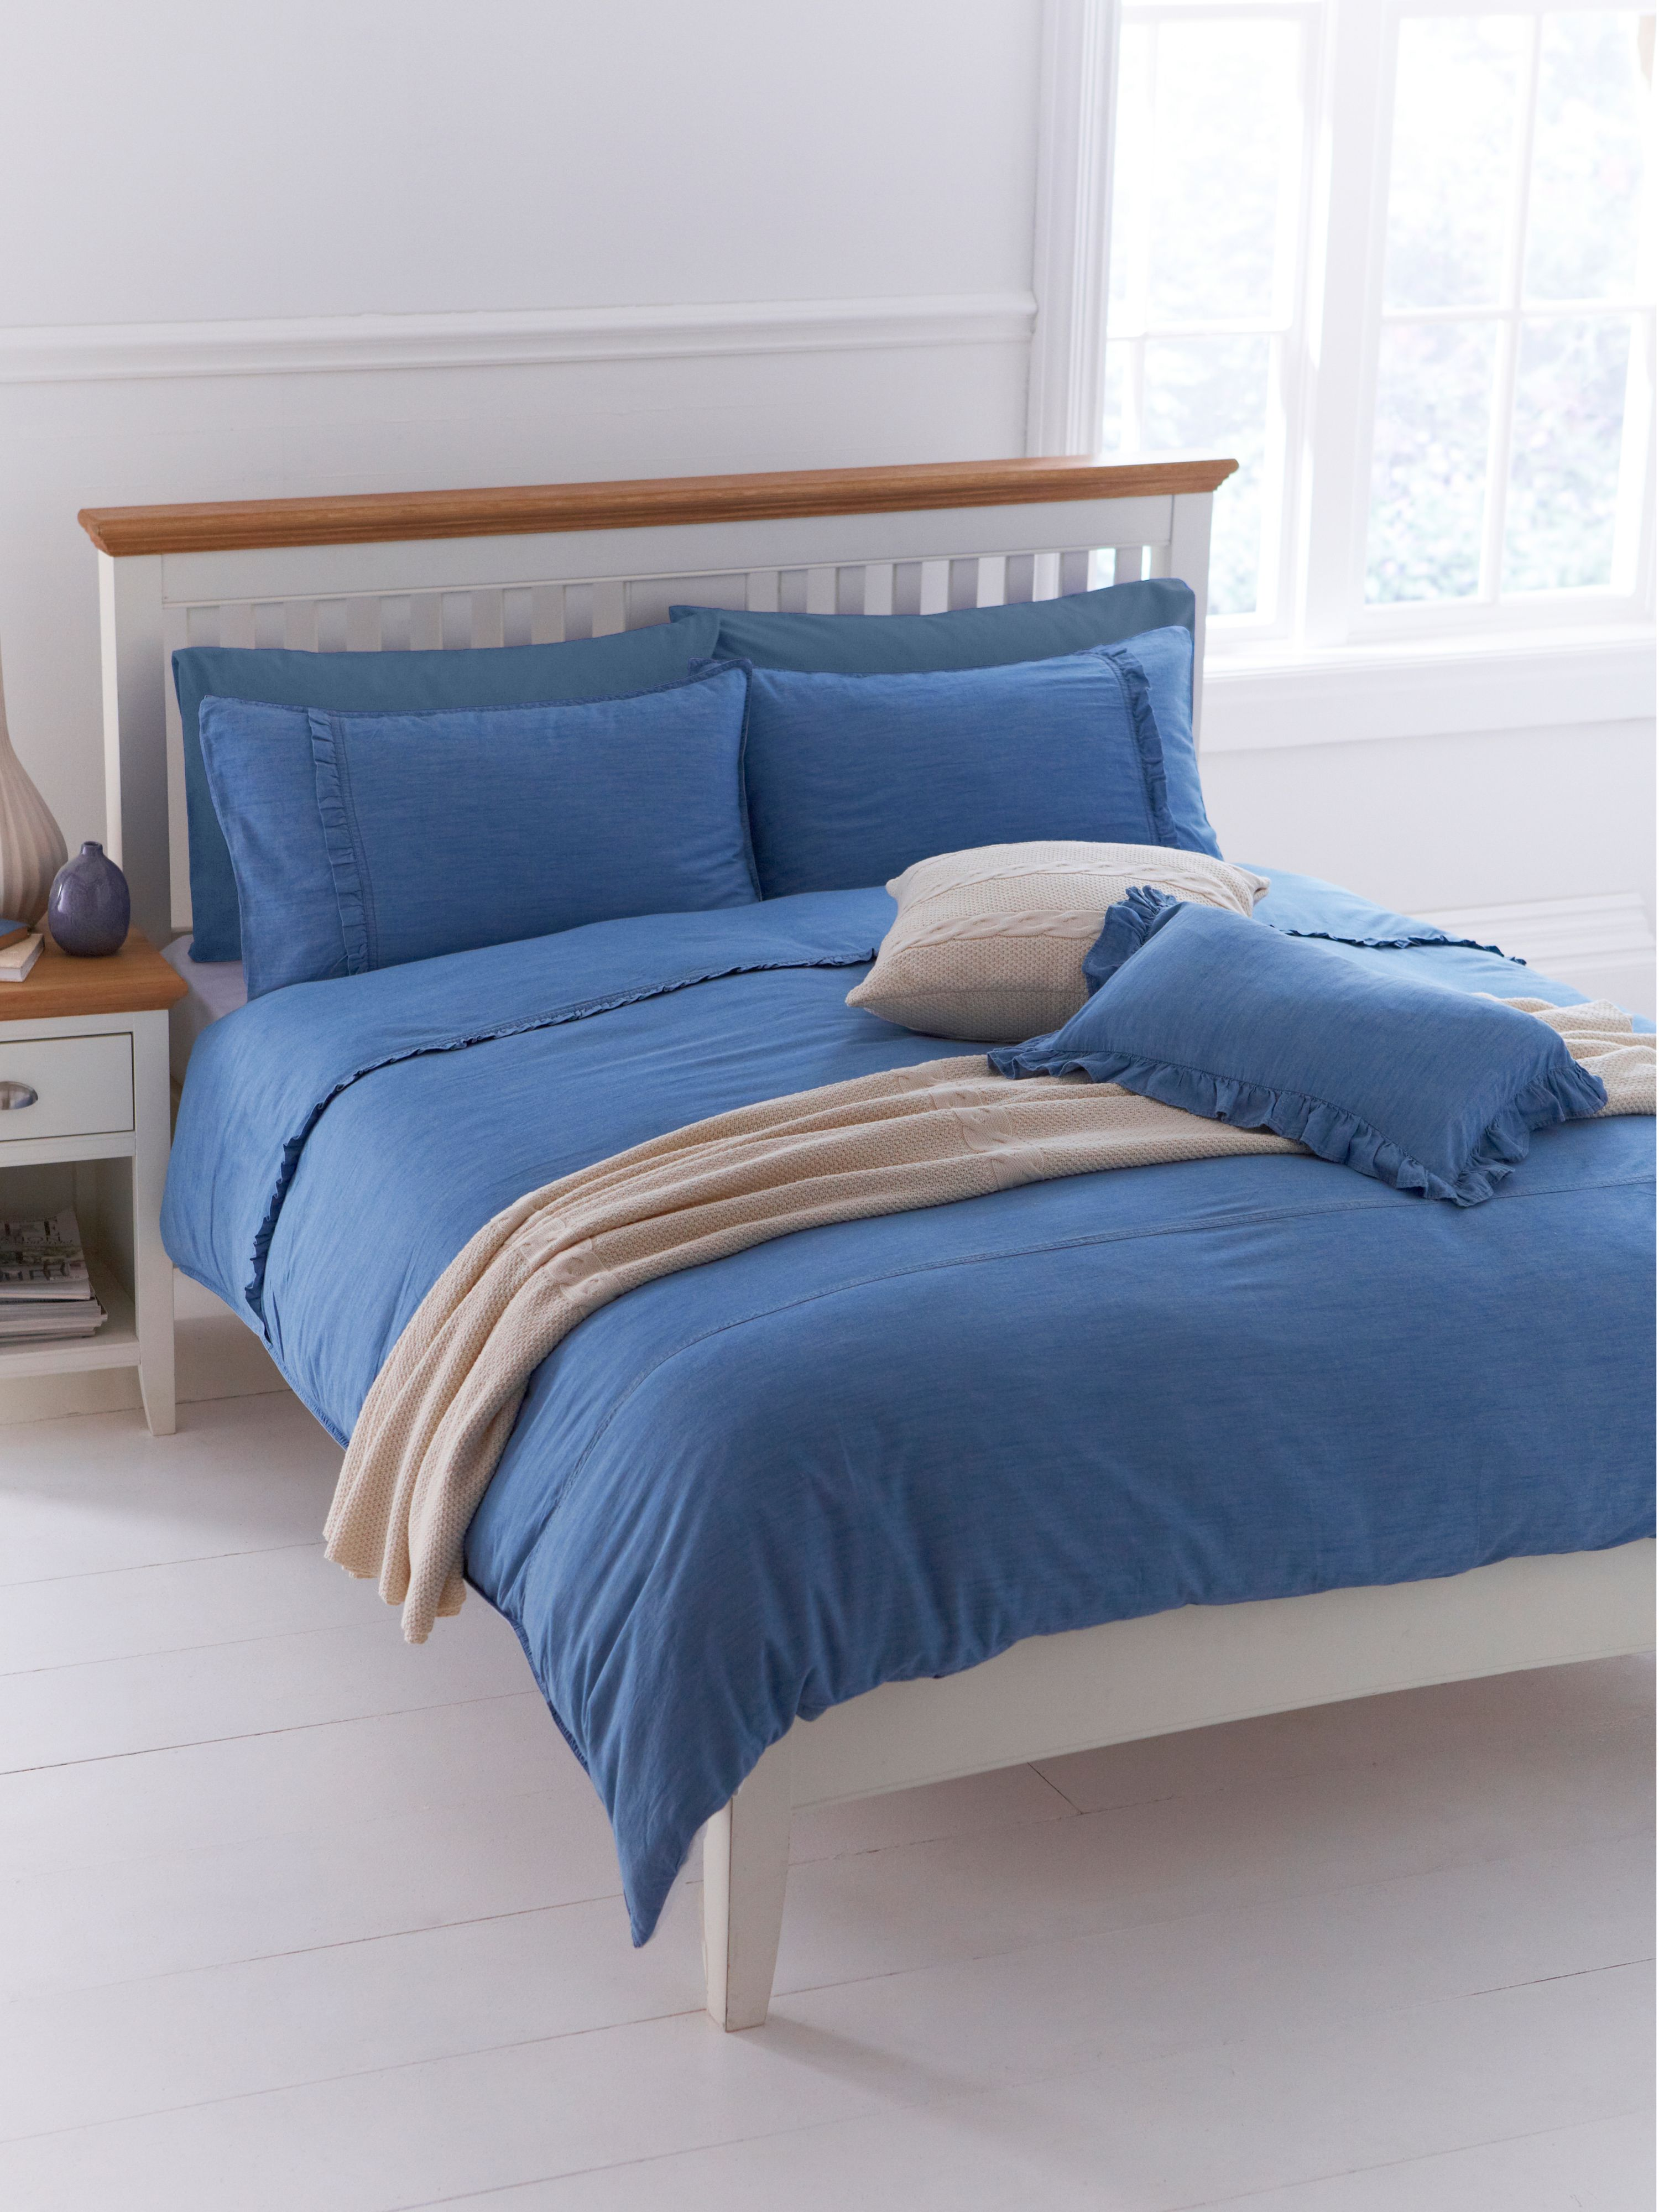 Pretty Denim superking duvet cover set